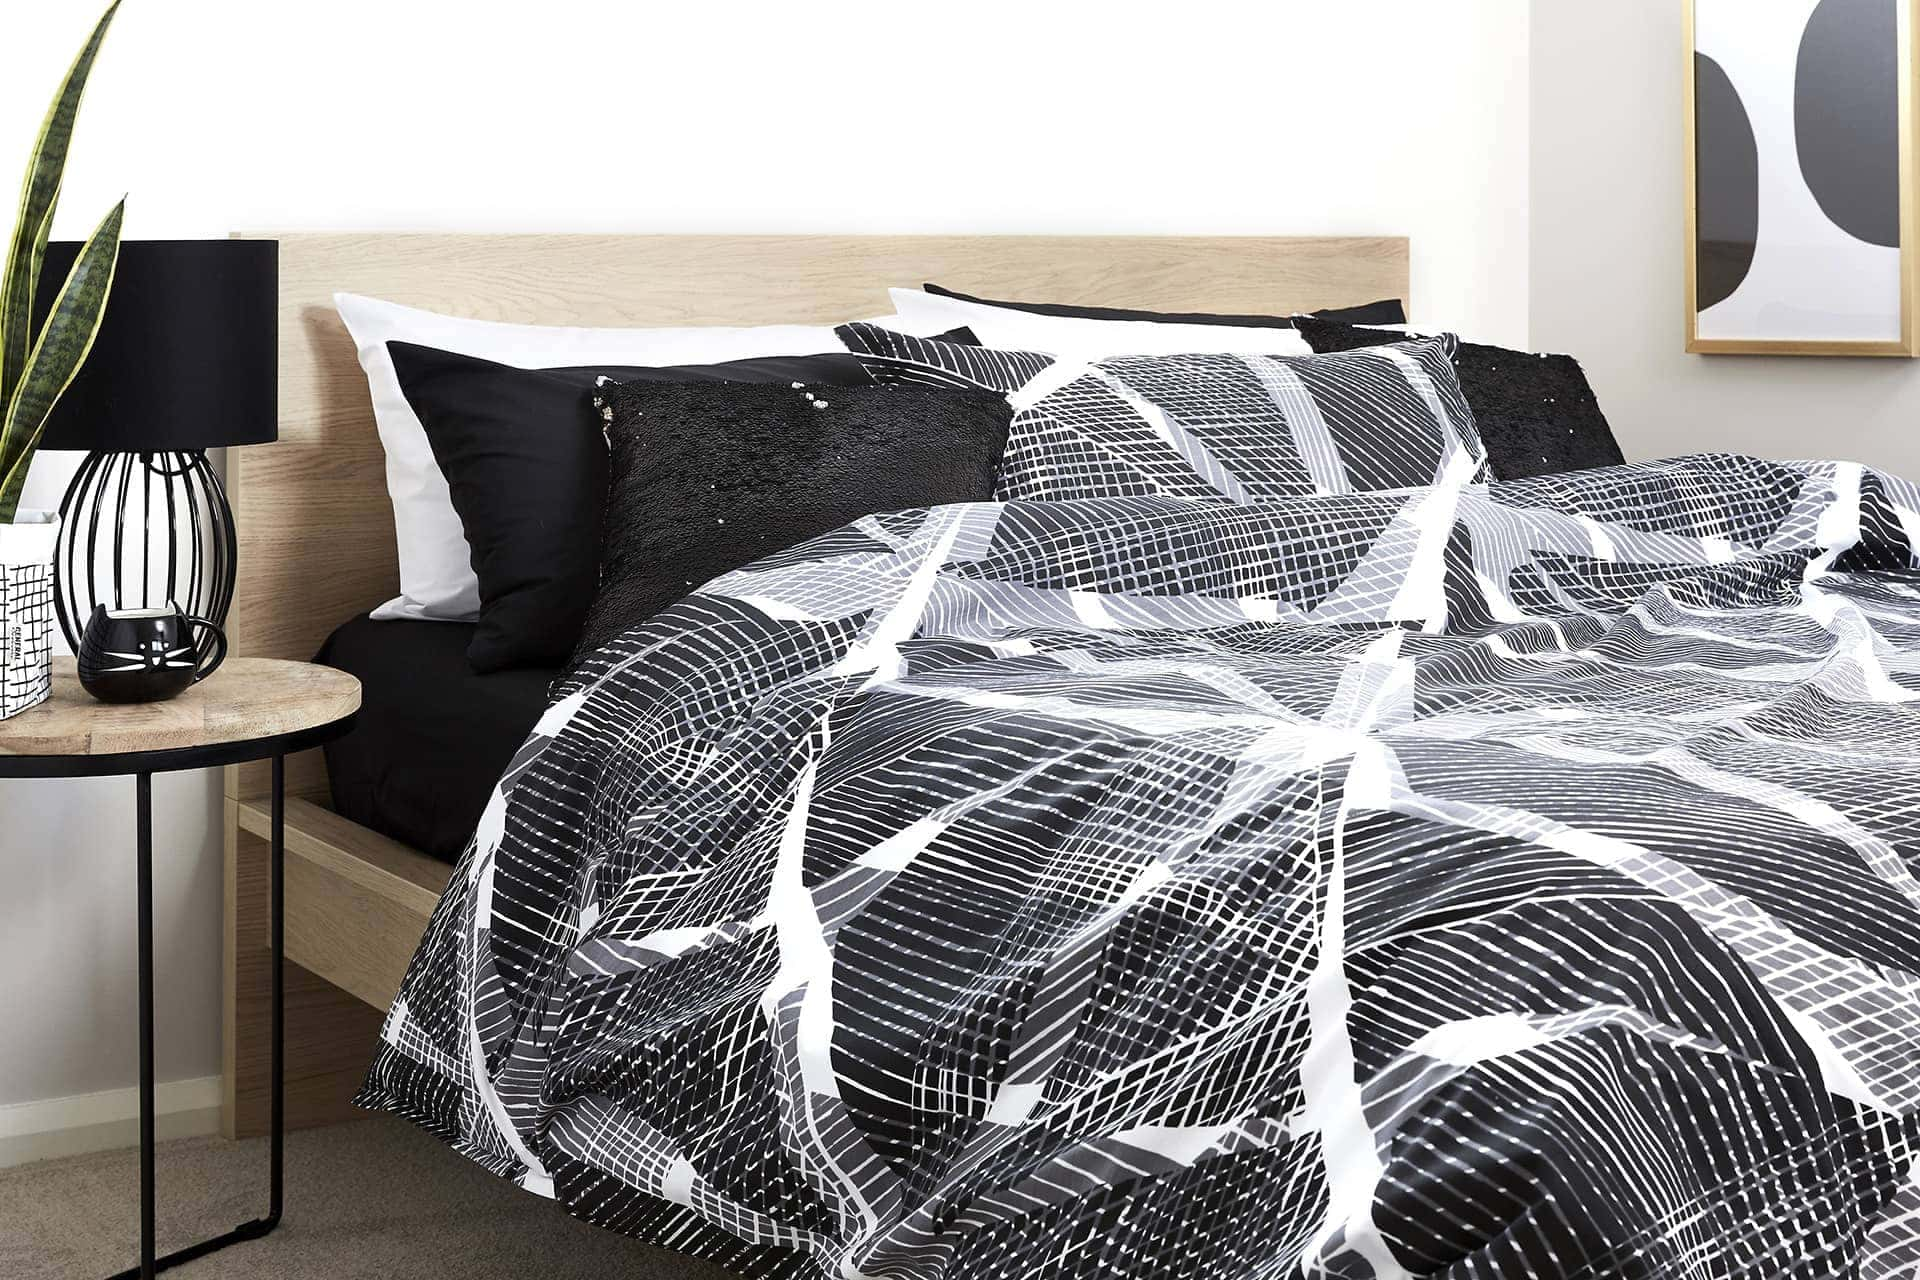 black and white patten bedding set from lorraine lea in monchomatic bedroom